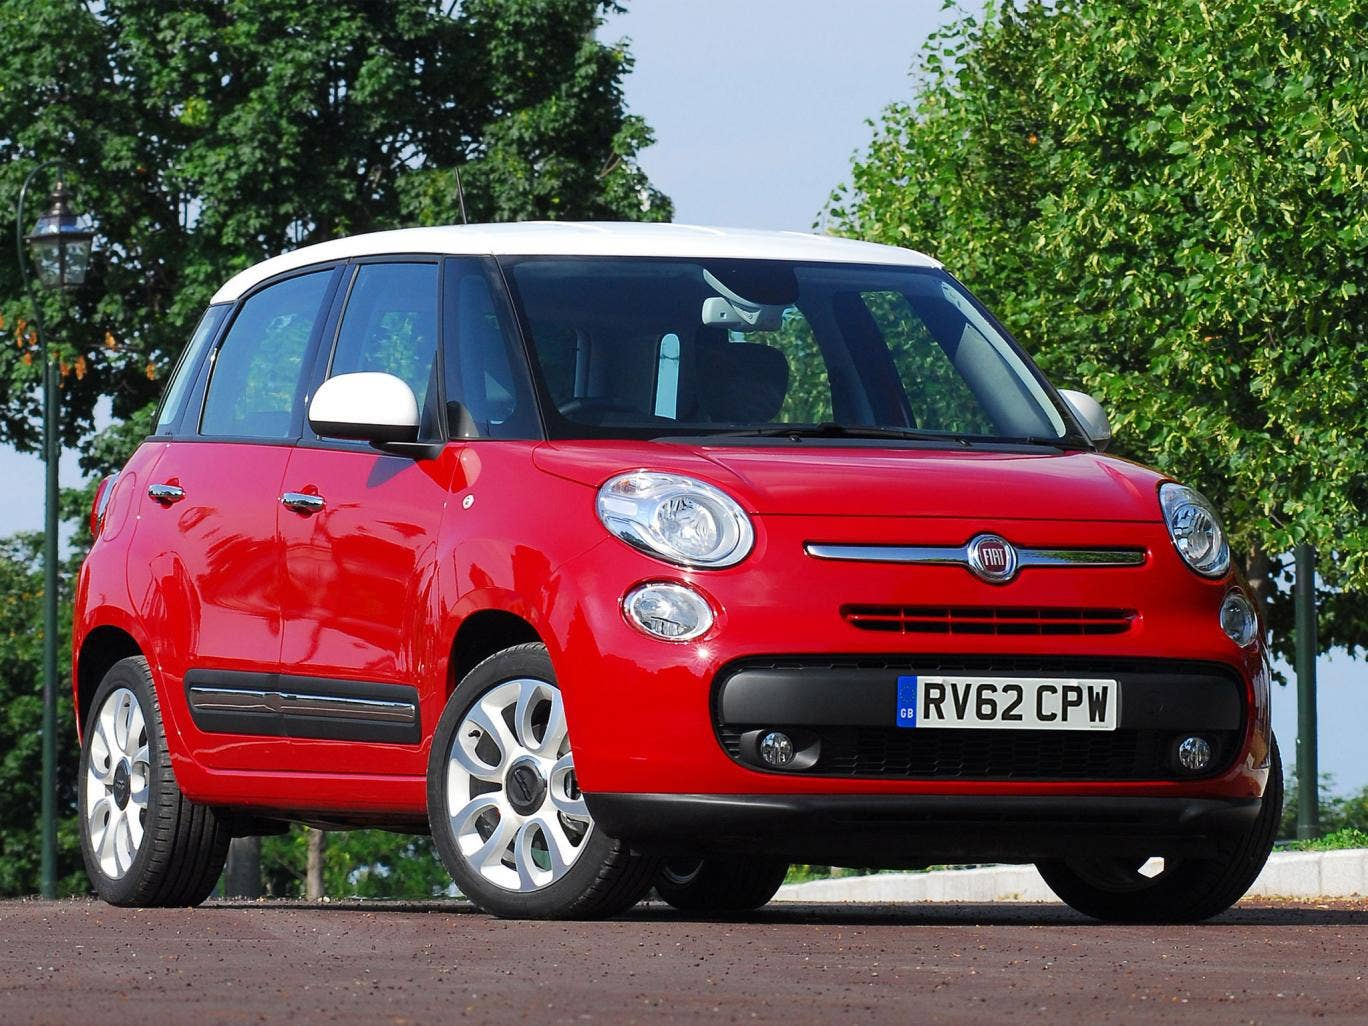 The Fiat 500L Multijet is an affordable, robust and practical family car